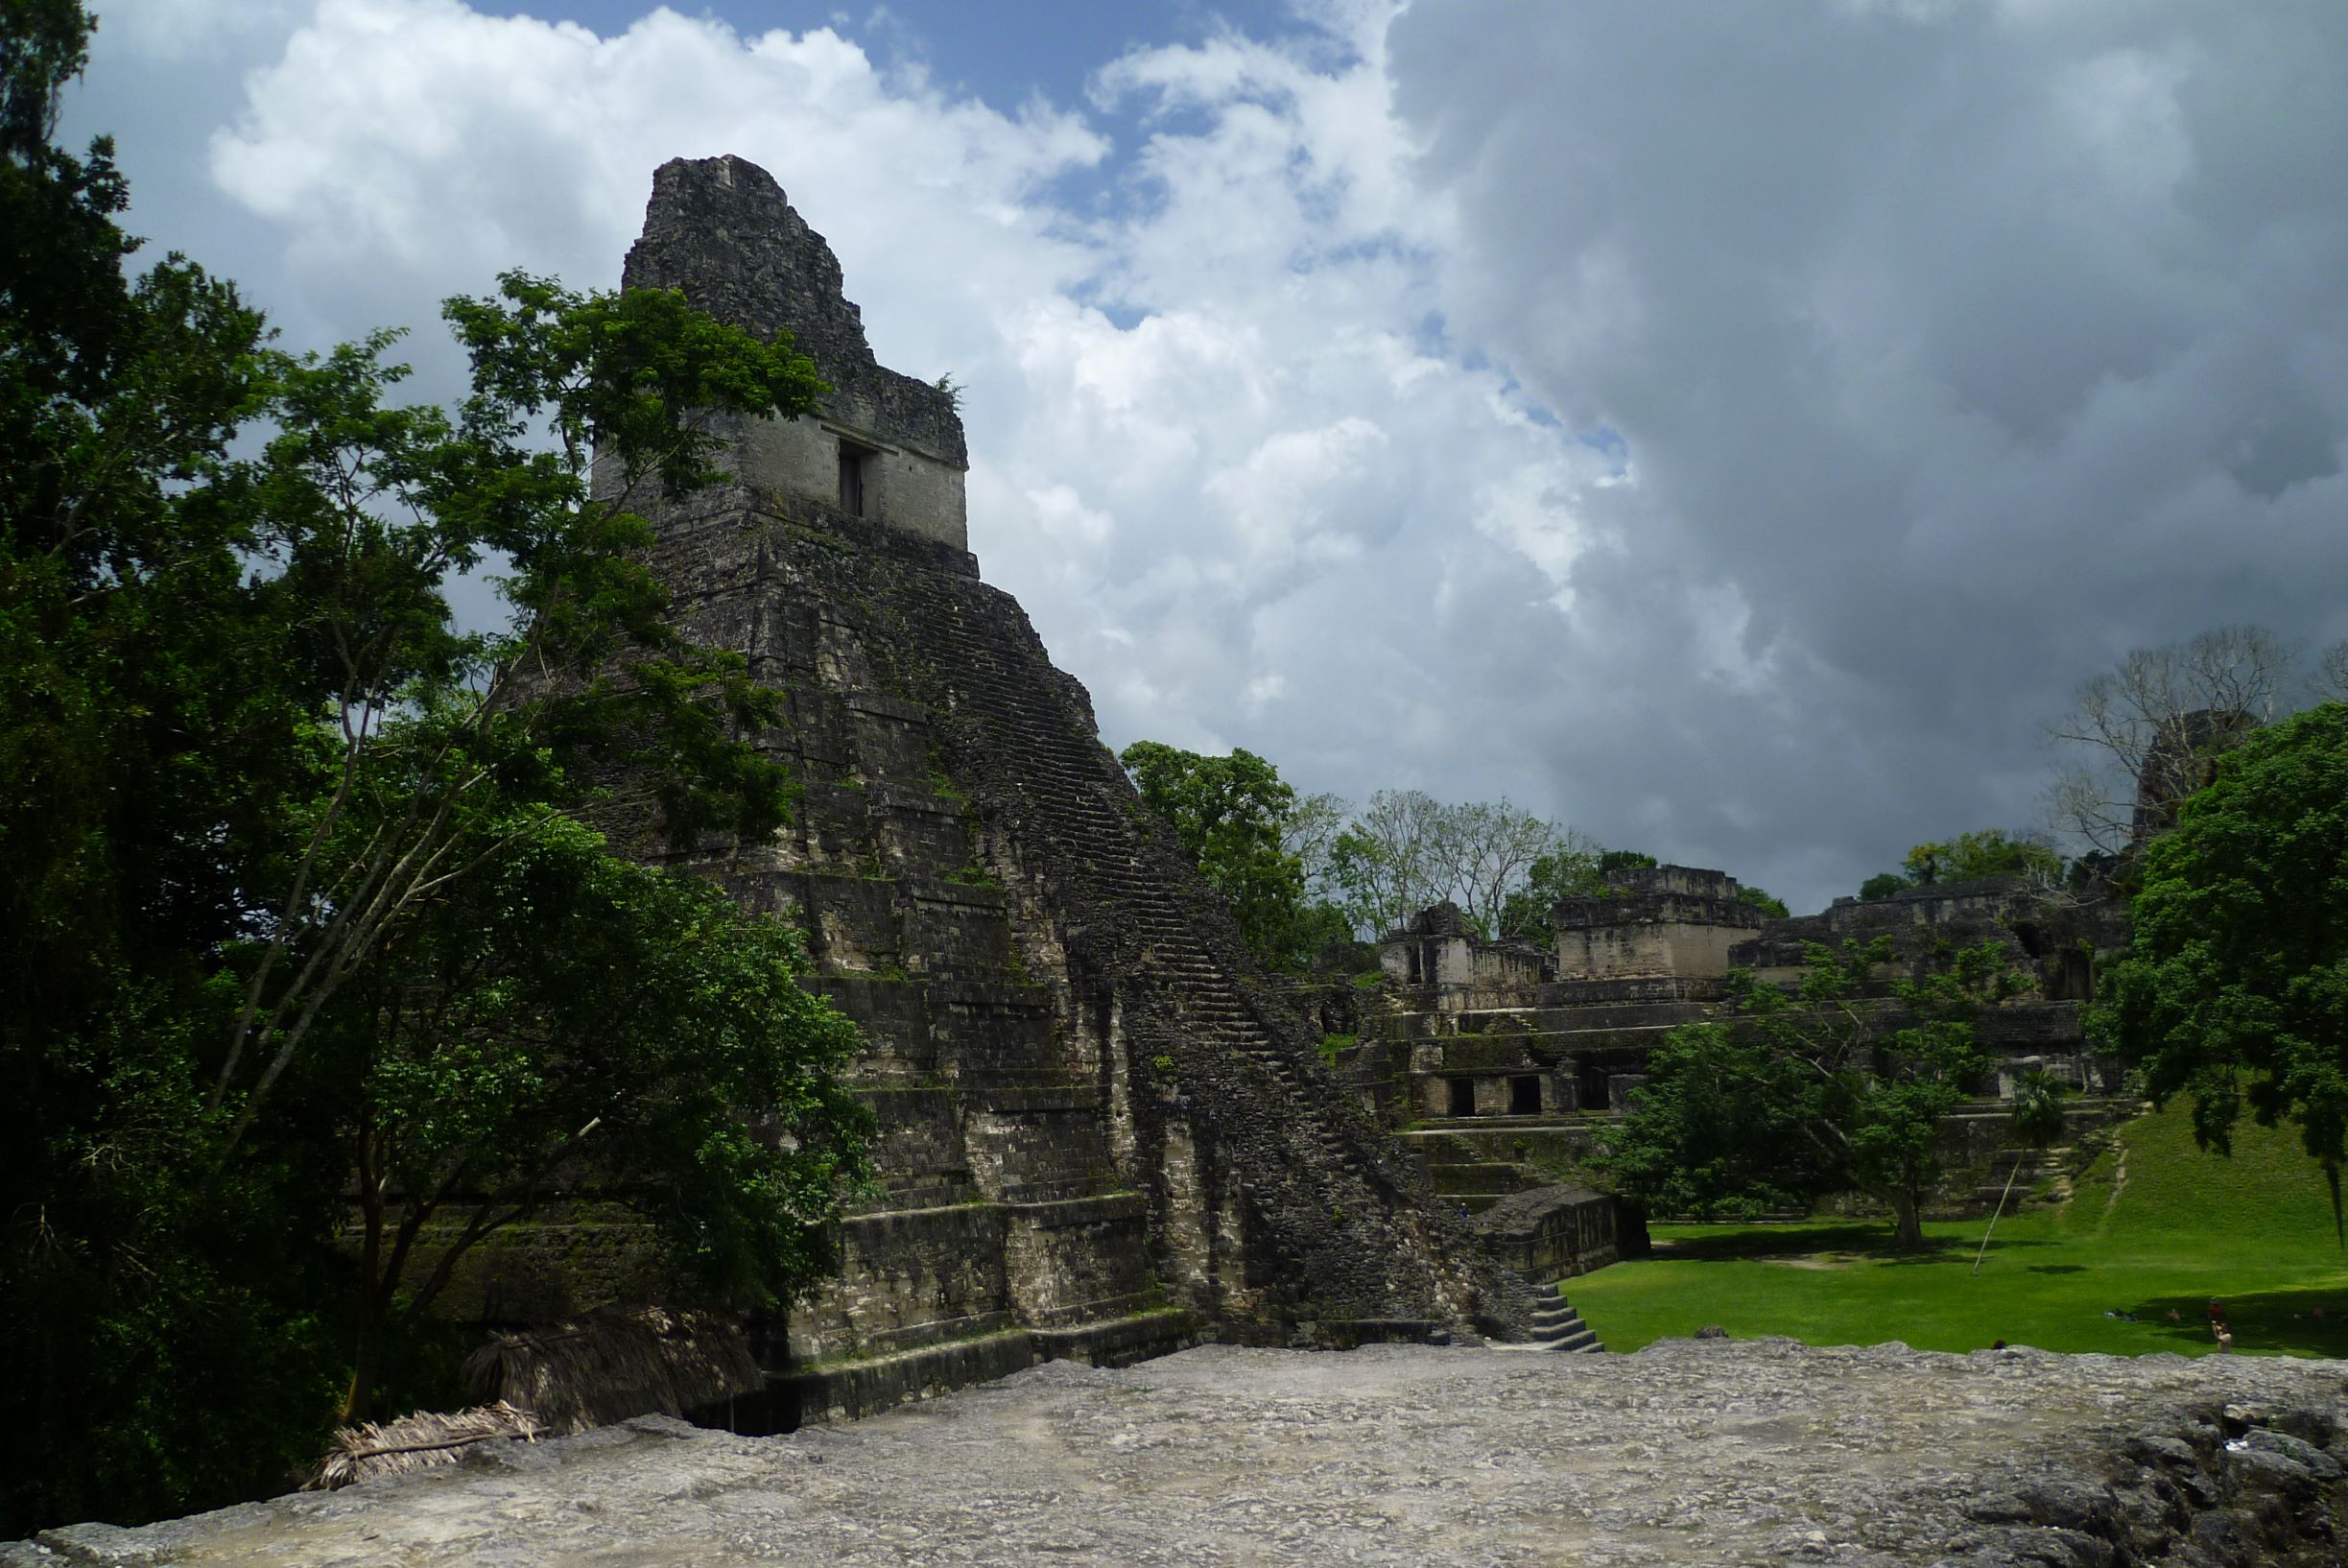 Ruins of a Maya city in Tikal, Guatemala